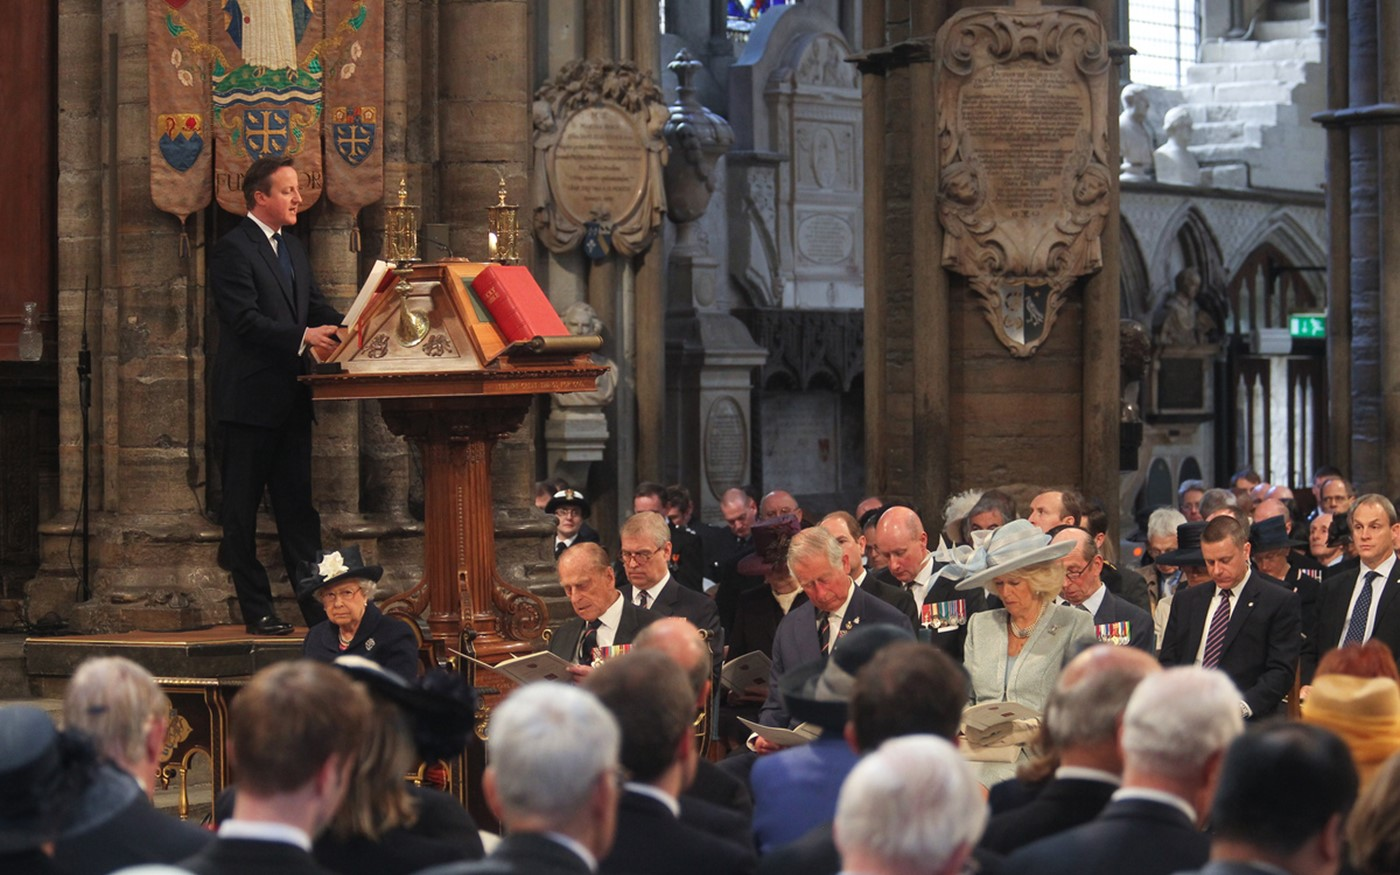 Prime Minister David Cameron reads from the Great Lectern